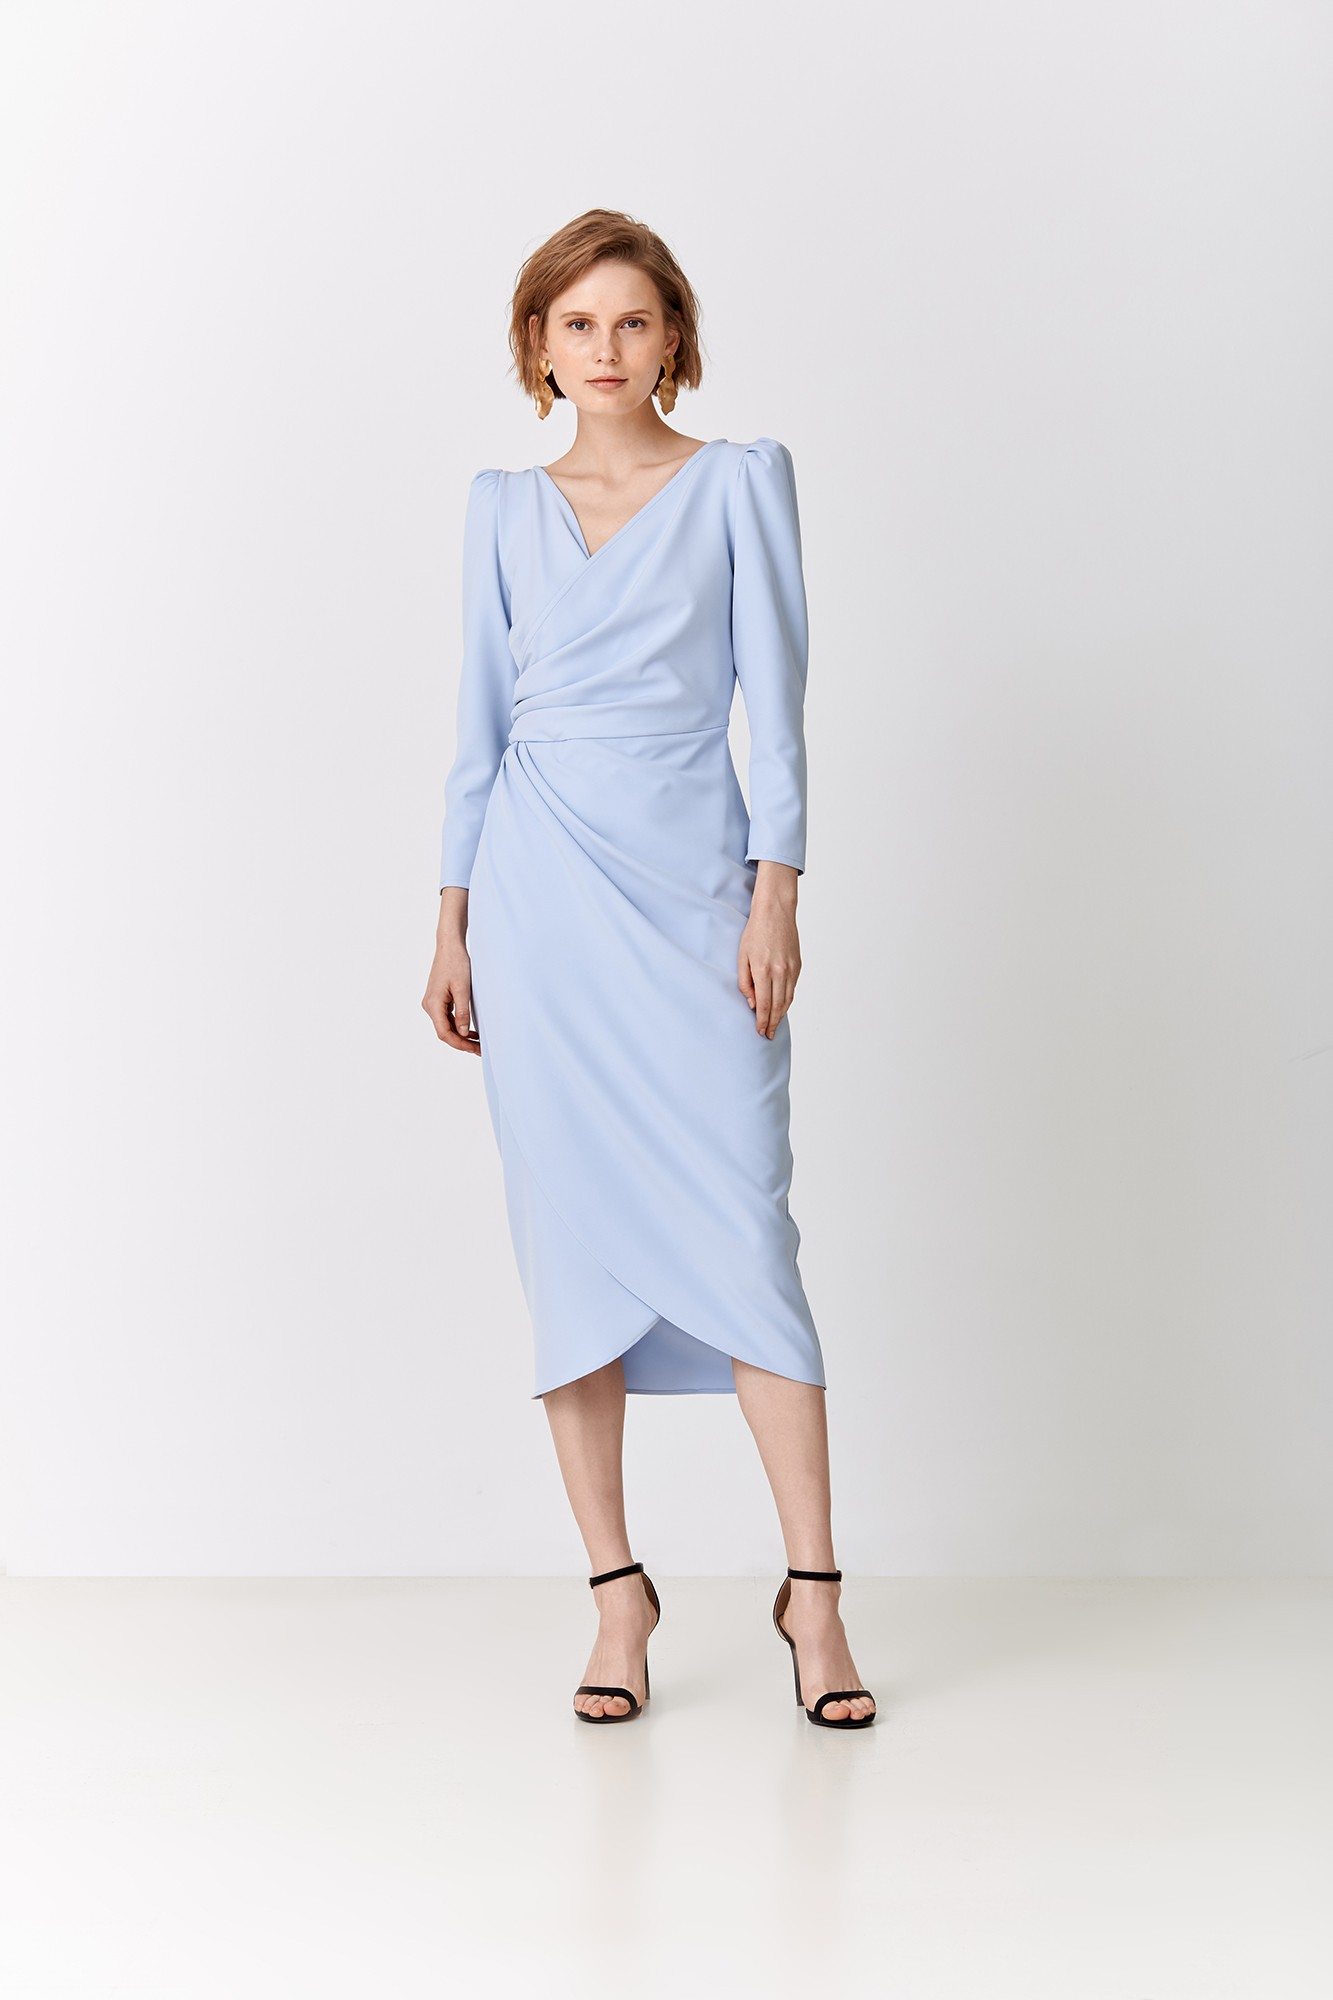 DAYLE BLUE DRESS